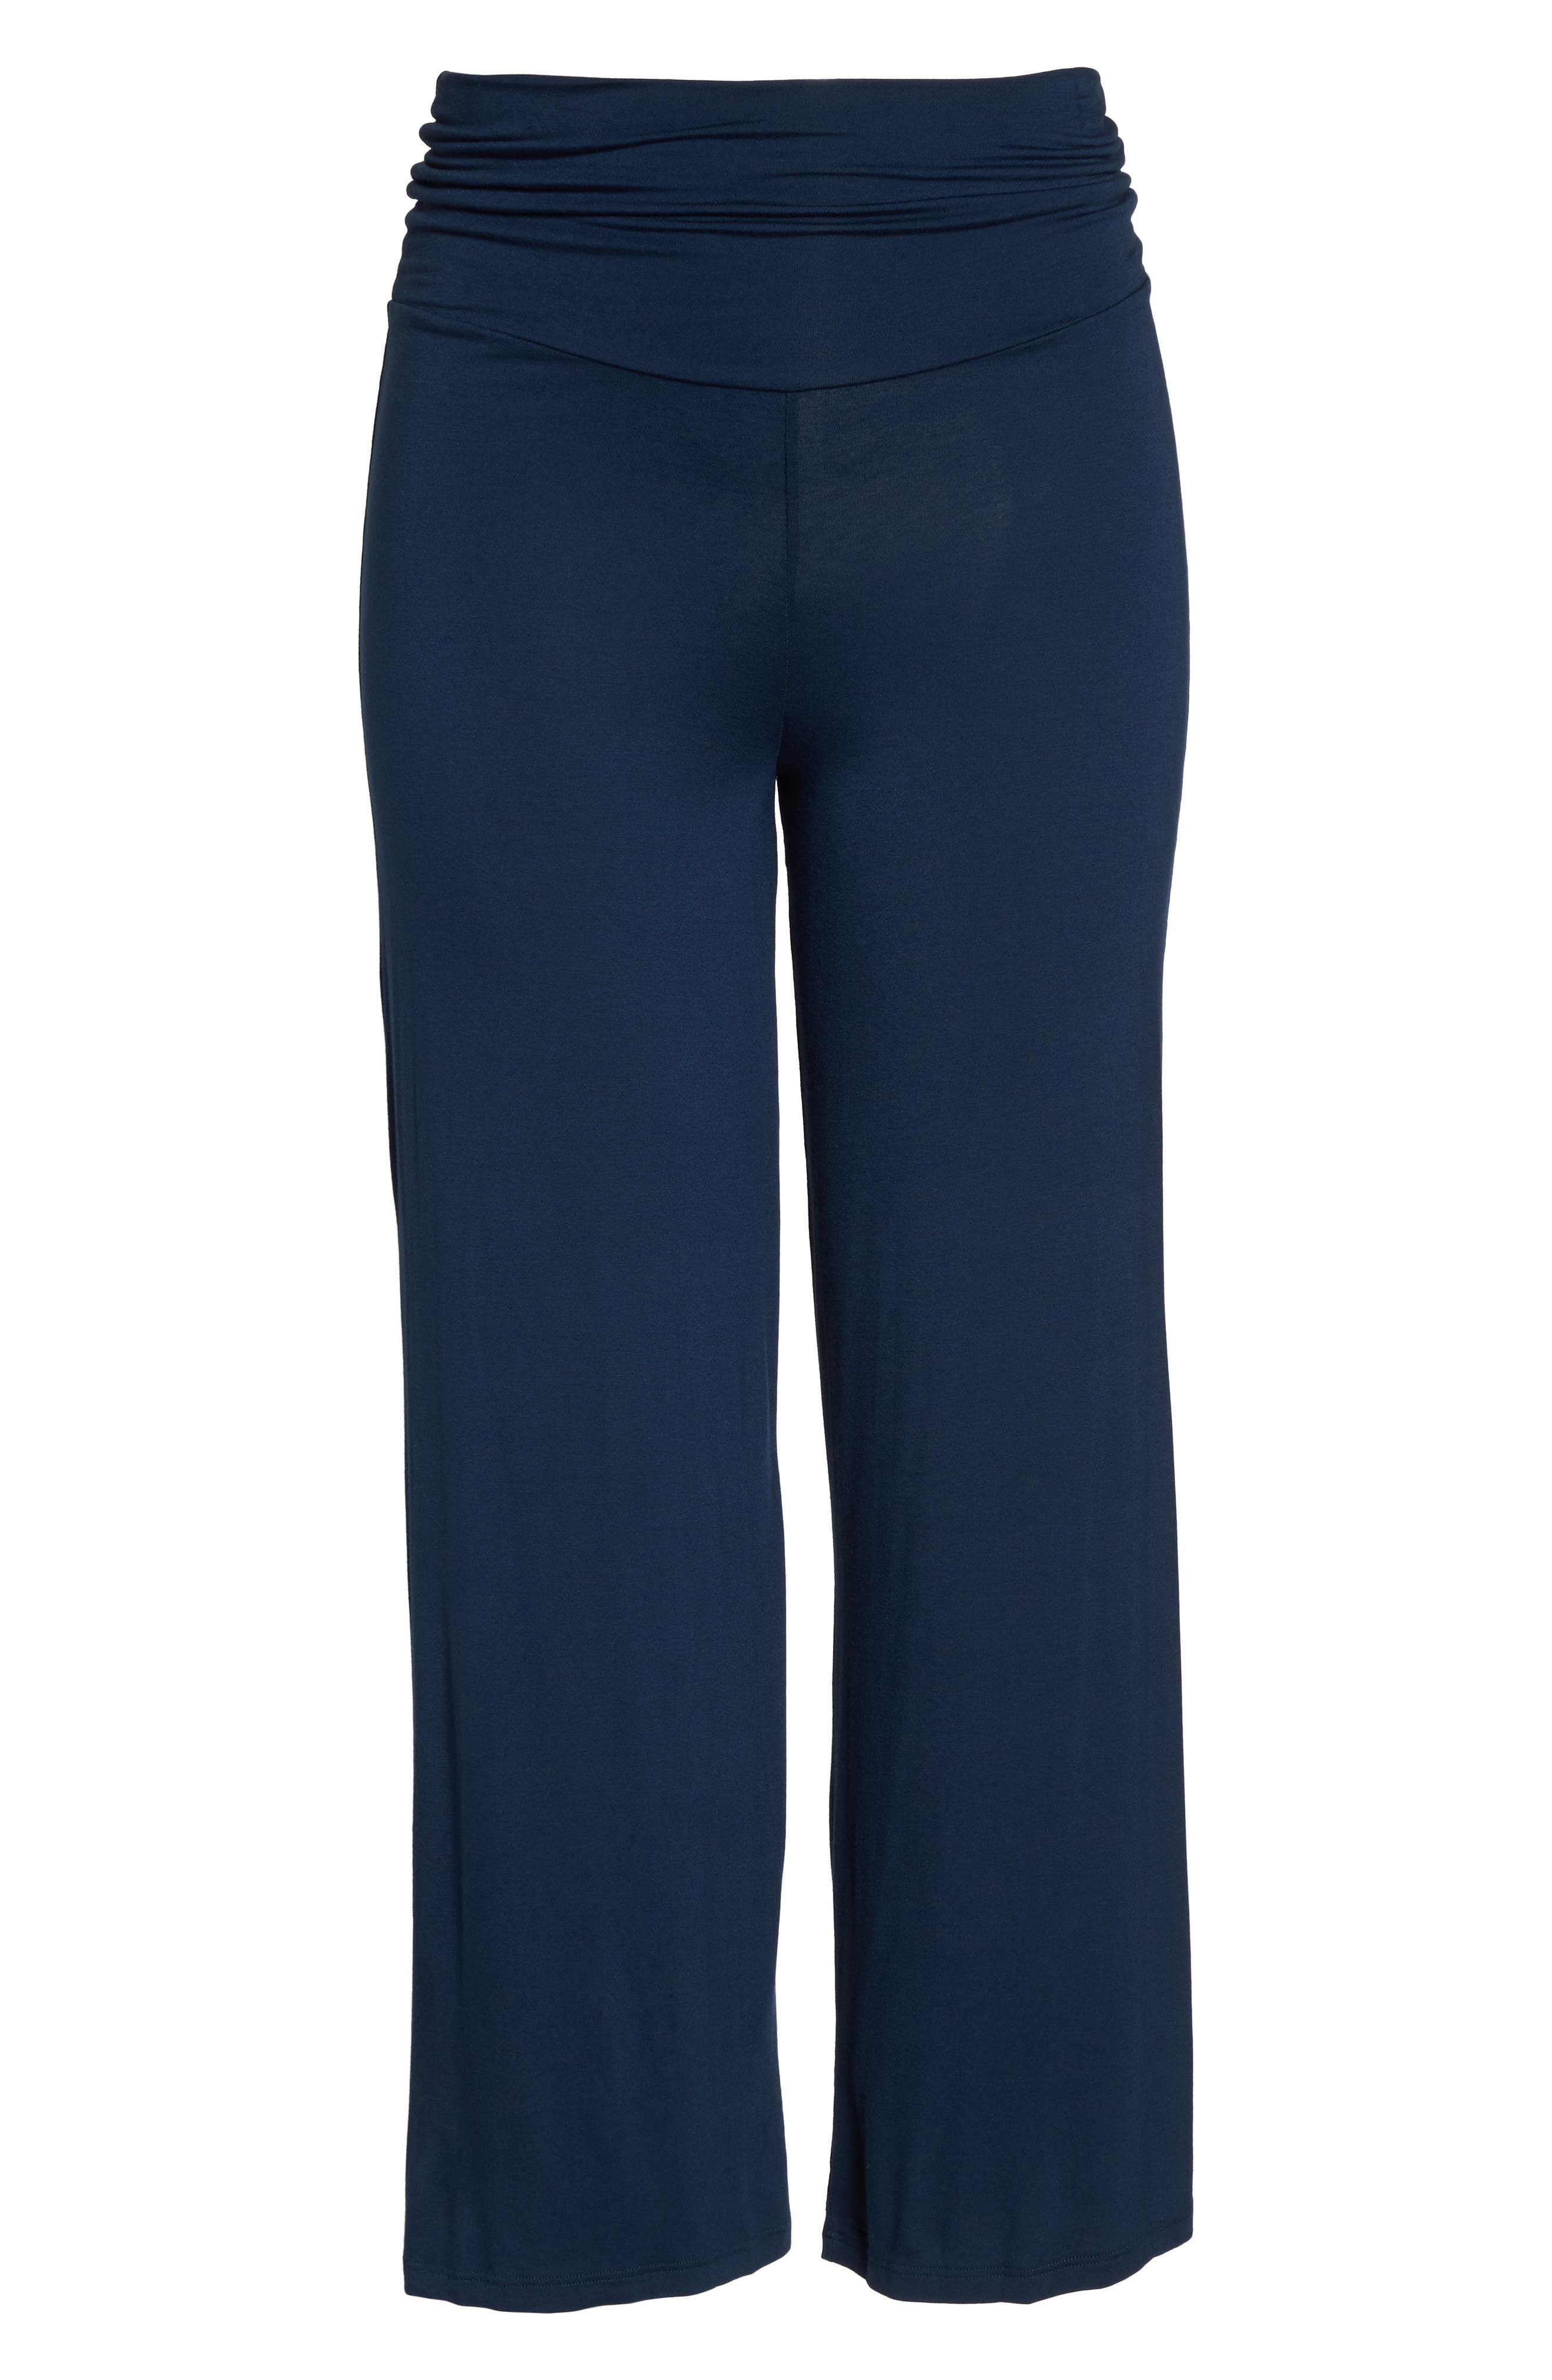 Knit Pants,                             Alternate thumbnail 6, color,                             Navy